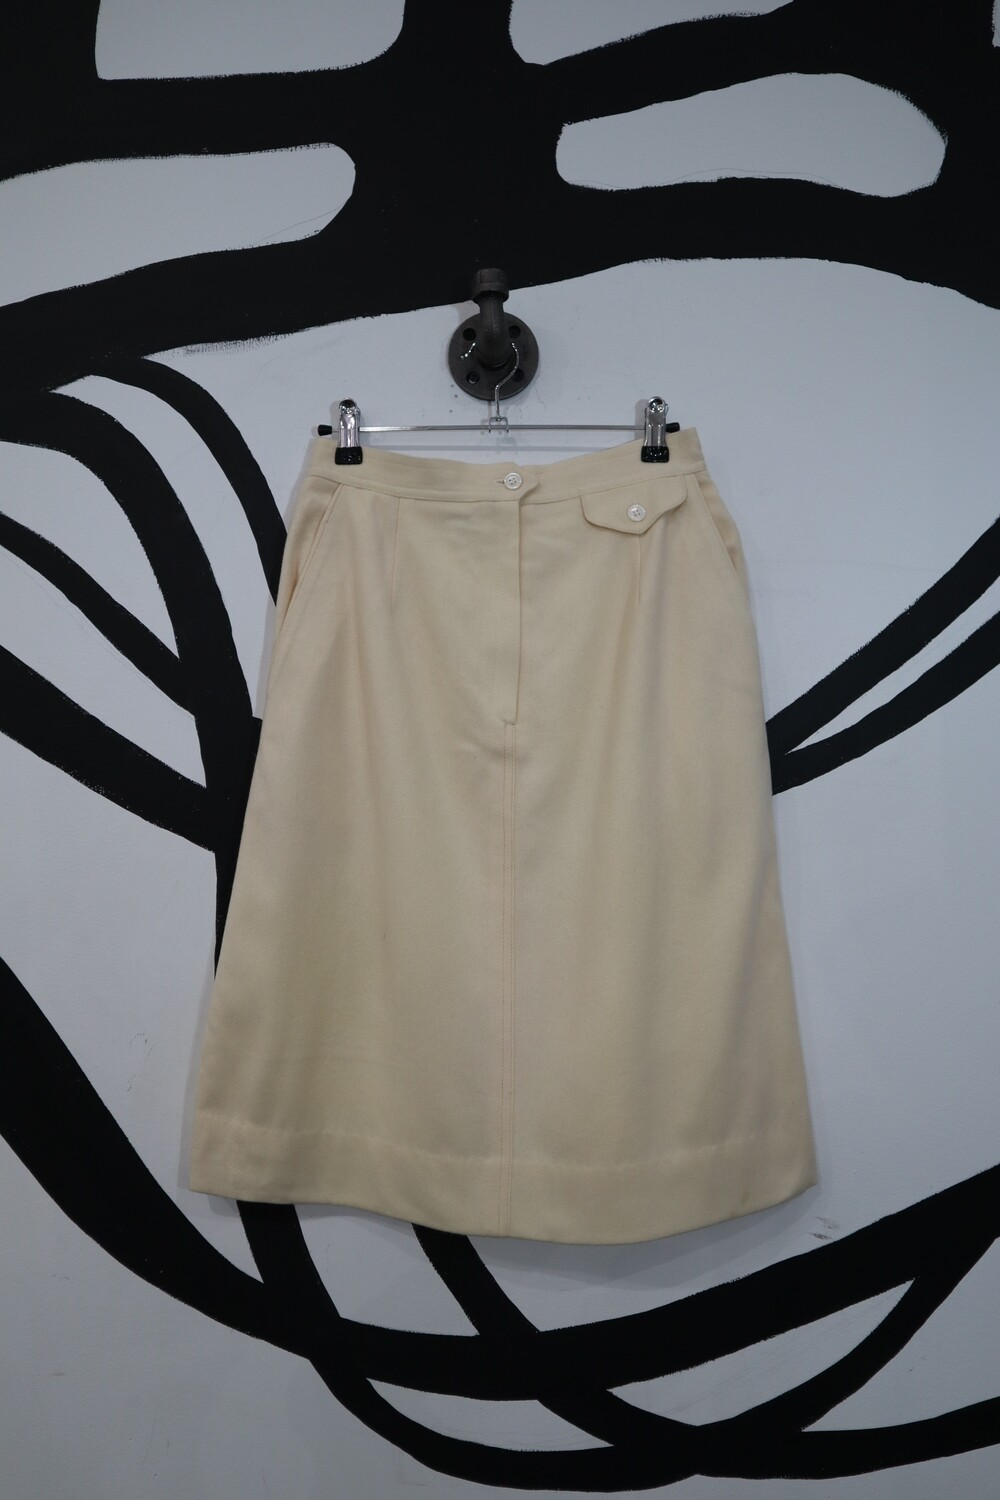 Cream Wool A-Line Skirt with Front Zip and Pockets - Size 8